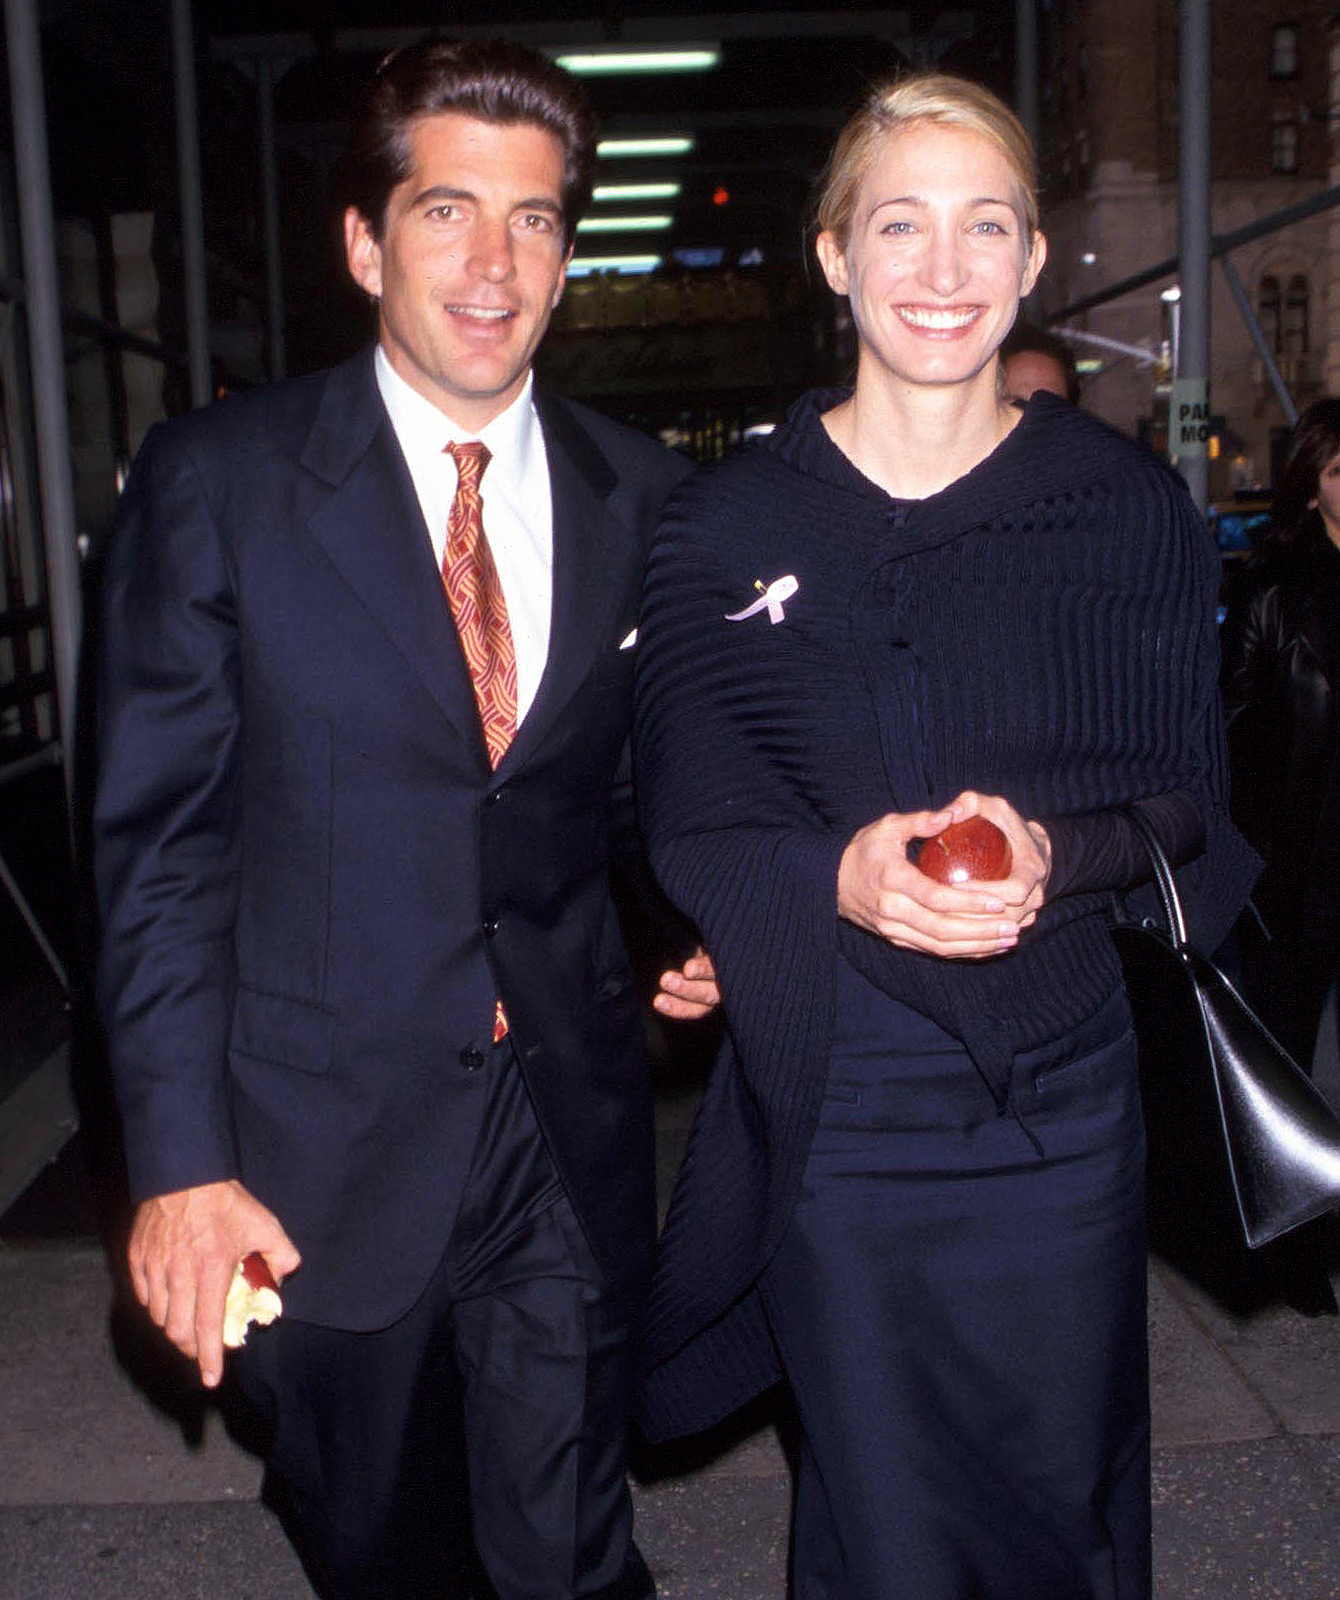 Carole and Anthony Radziwill, both in black dress, seemed happy while walking hand-in-hand.